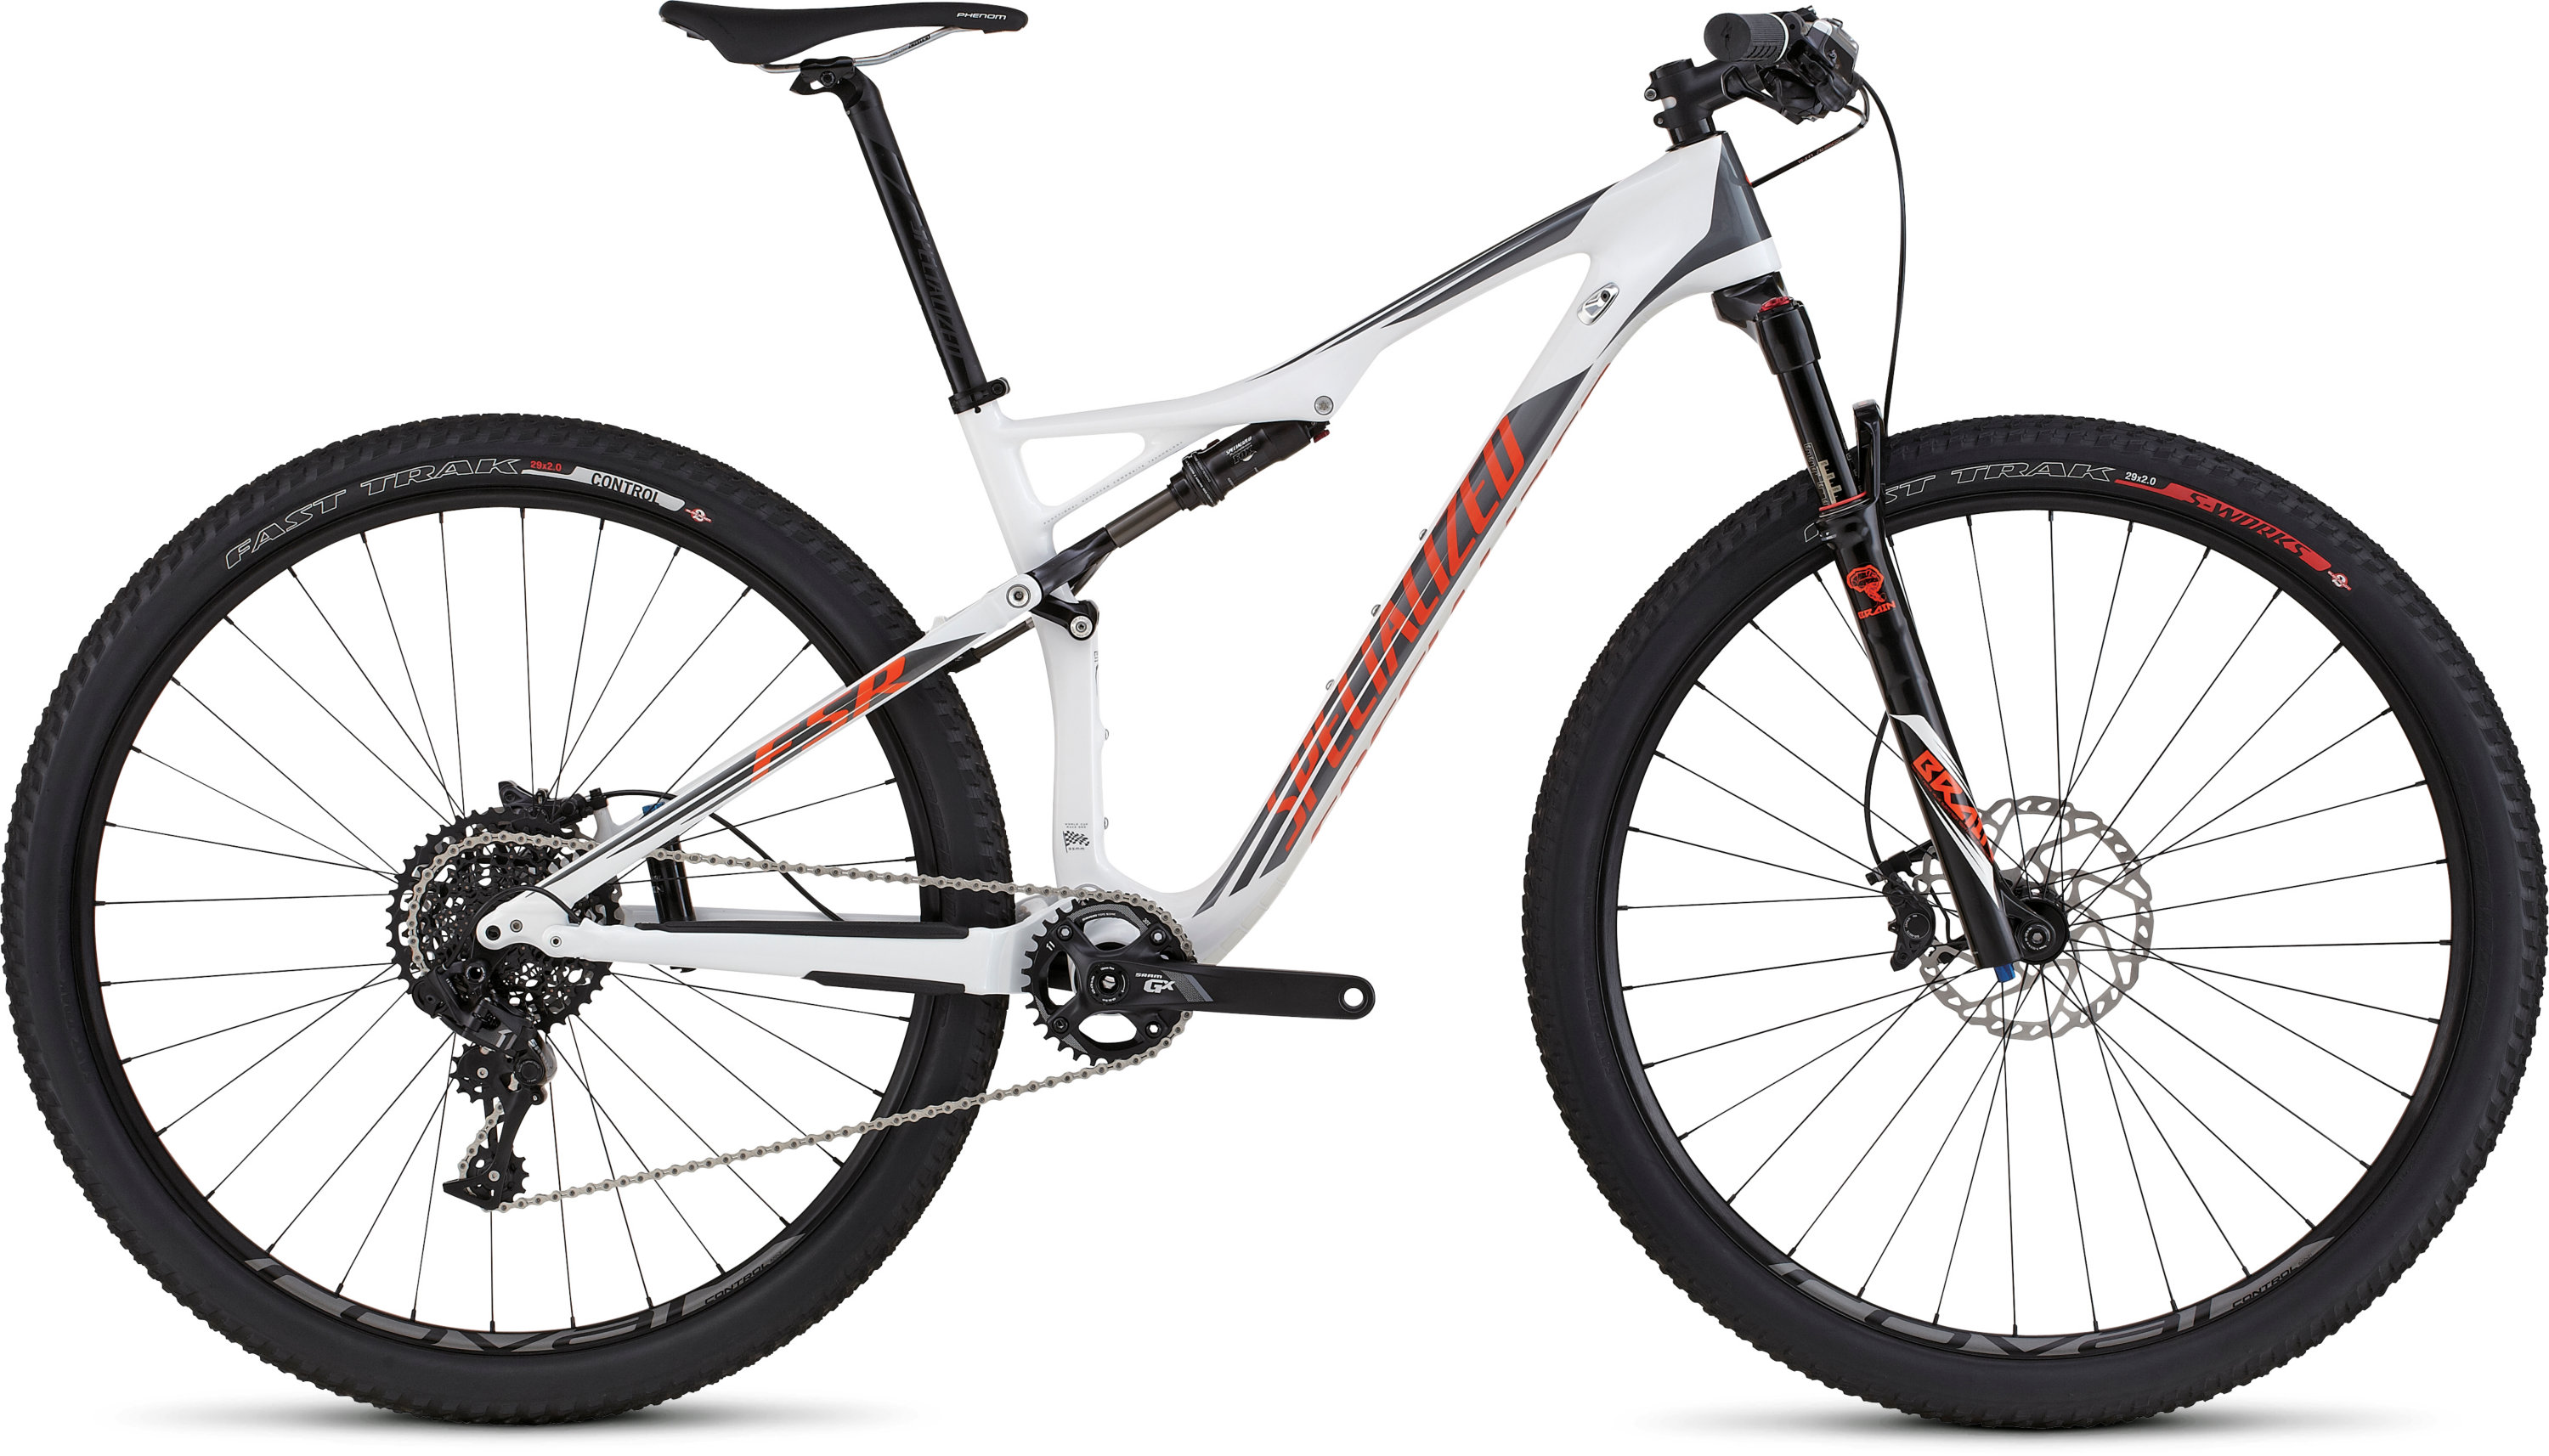 SPECIALIZED EPIC FSR ELITE CARBON WC 29 WHT/CHAR/MXORG L - SPECIALIZED EPIC FSR ELITE CARBON WC 29 WHT/CHAR/MXORG L